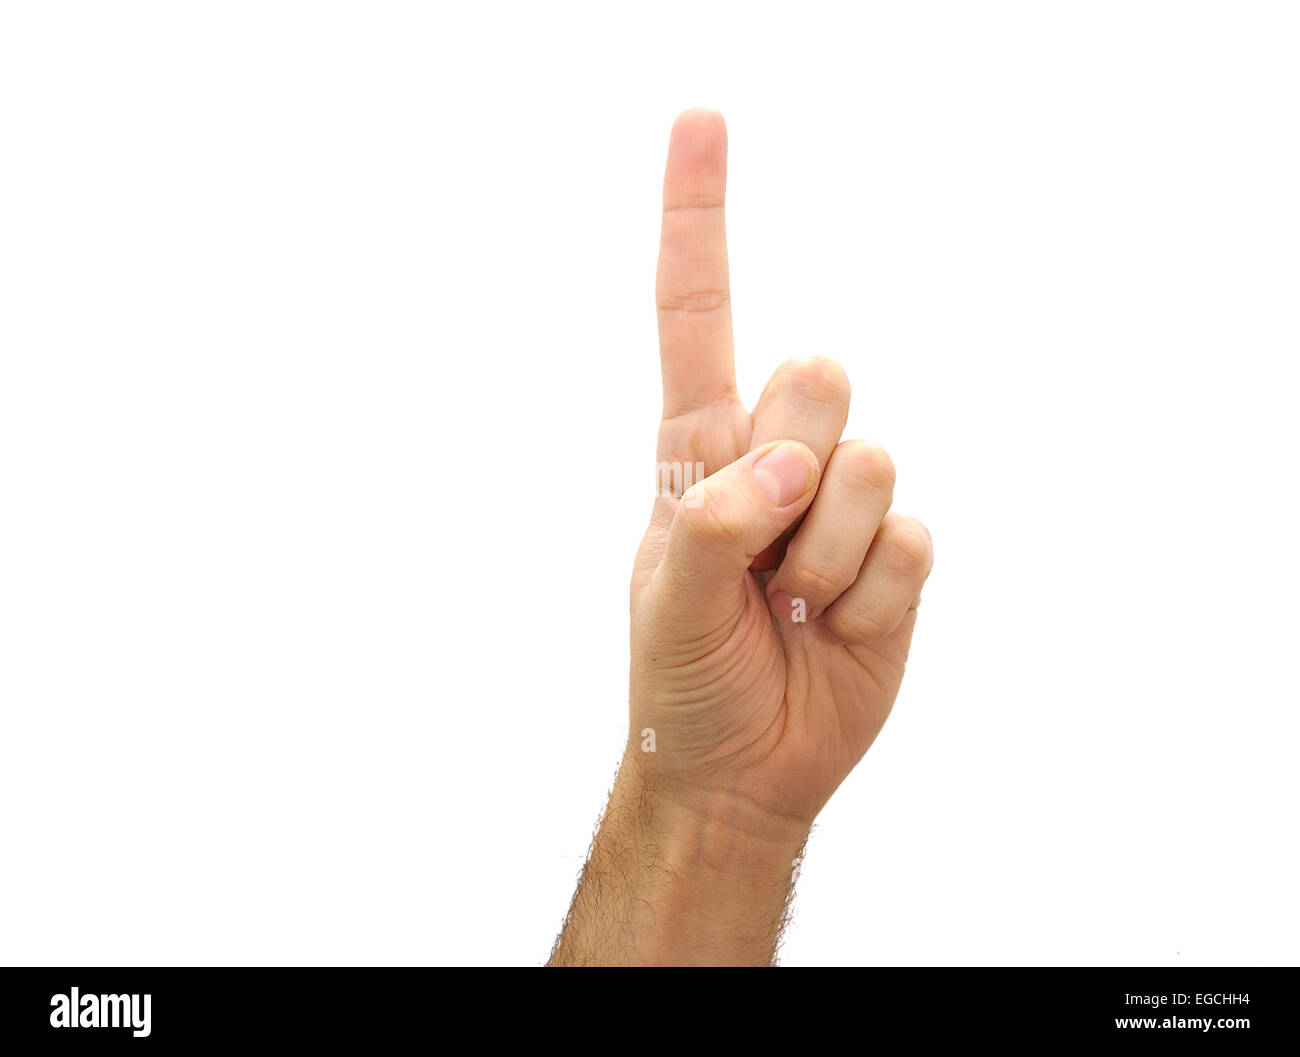 Caucasian man hand pointing upwards. Number one gesture isolated on white background - Stock Image